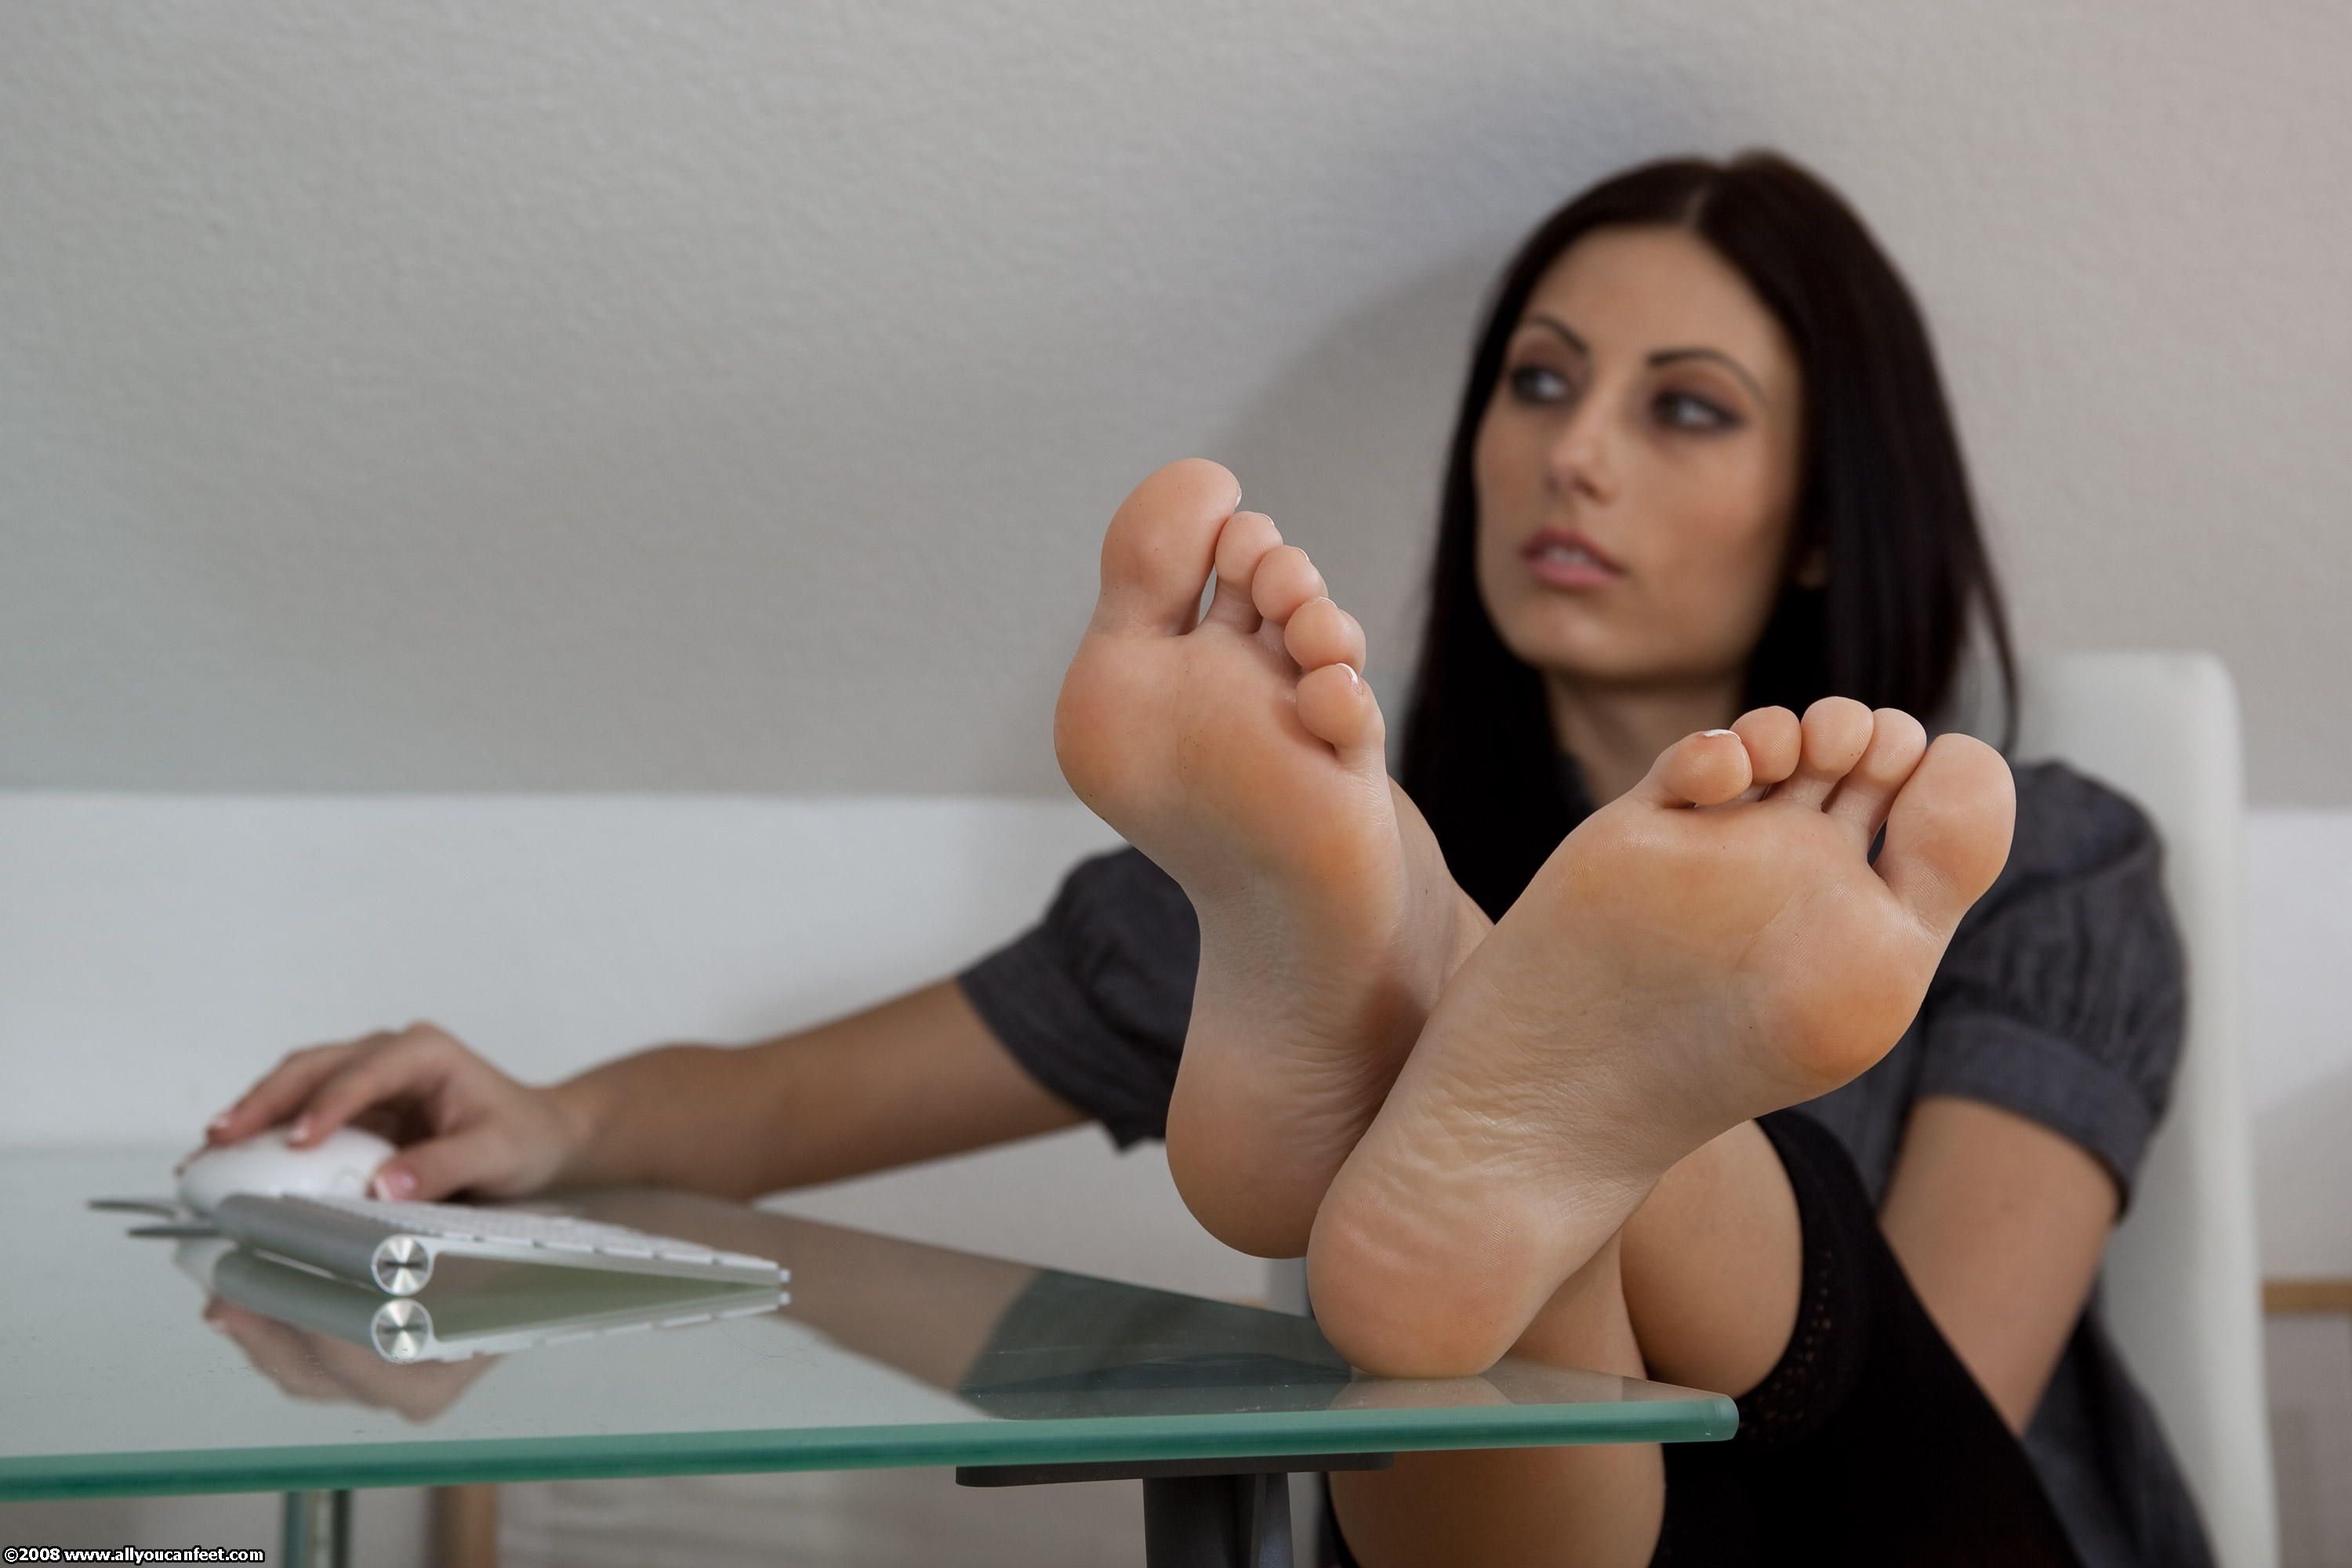 All you can feet pics